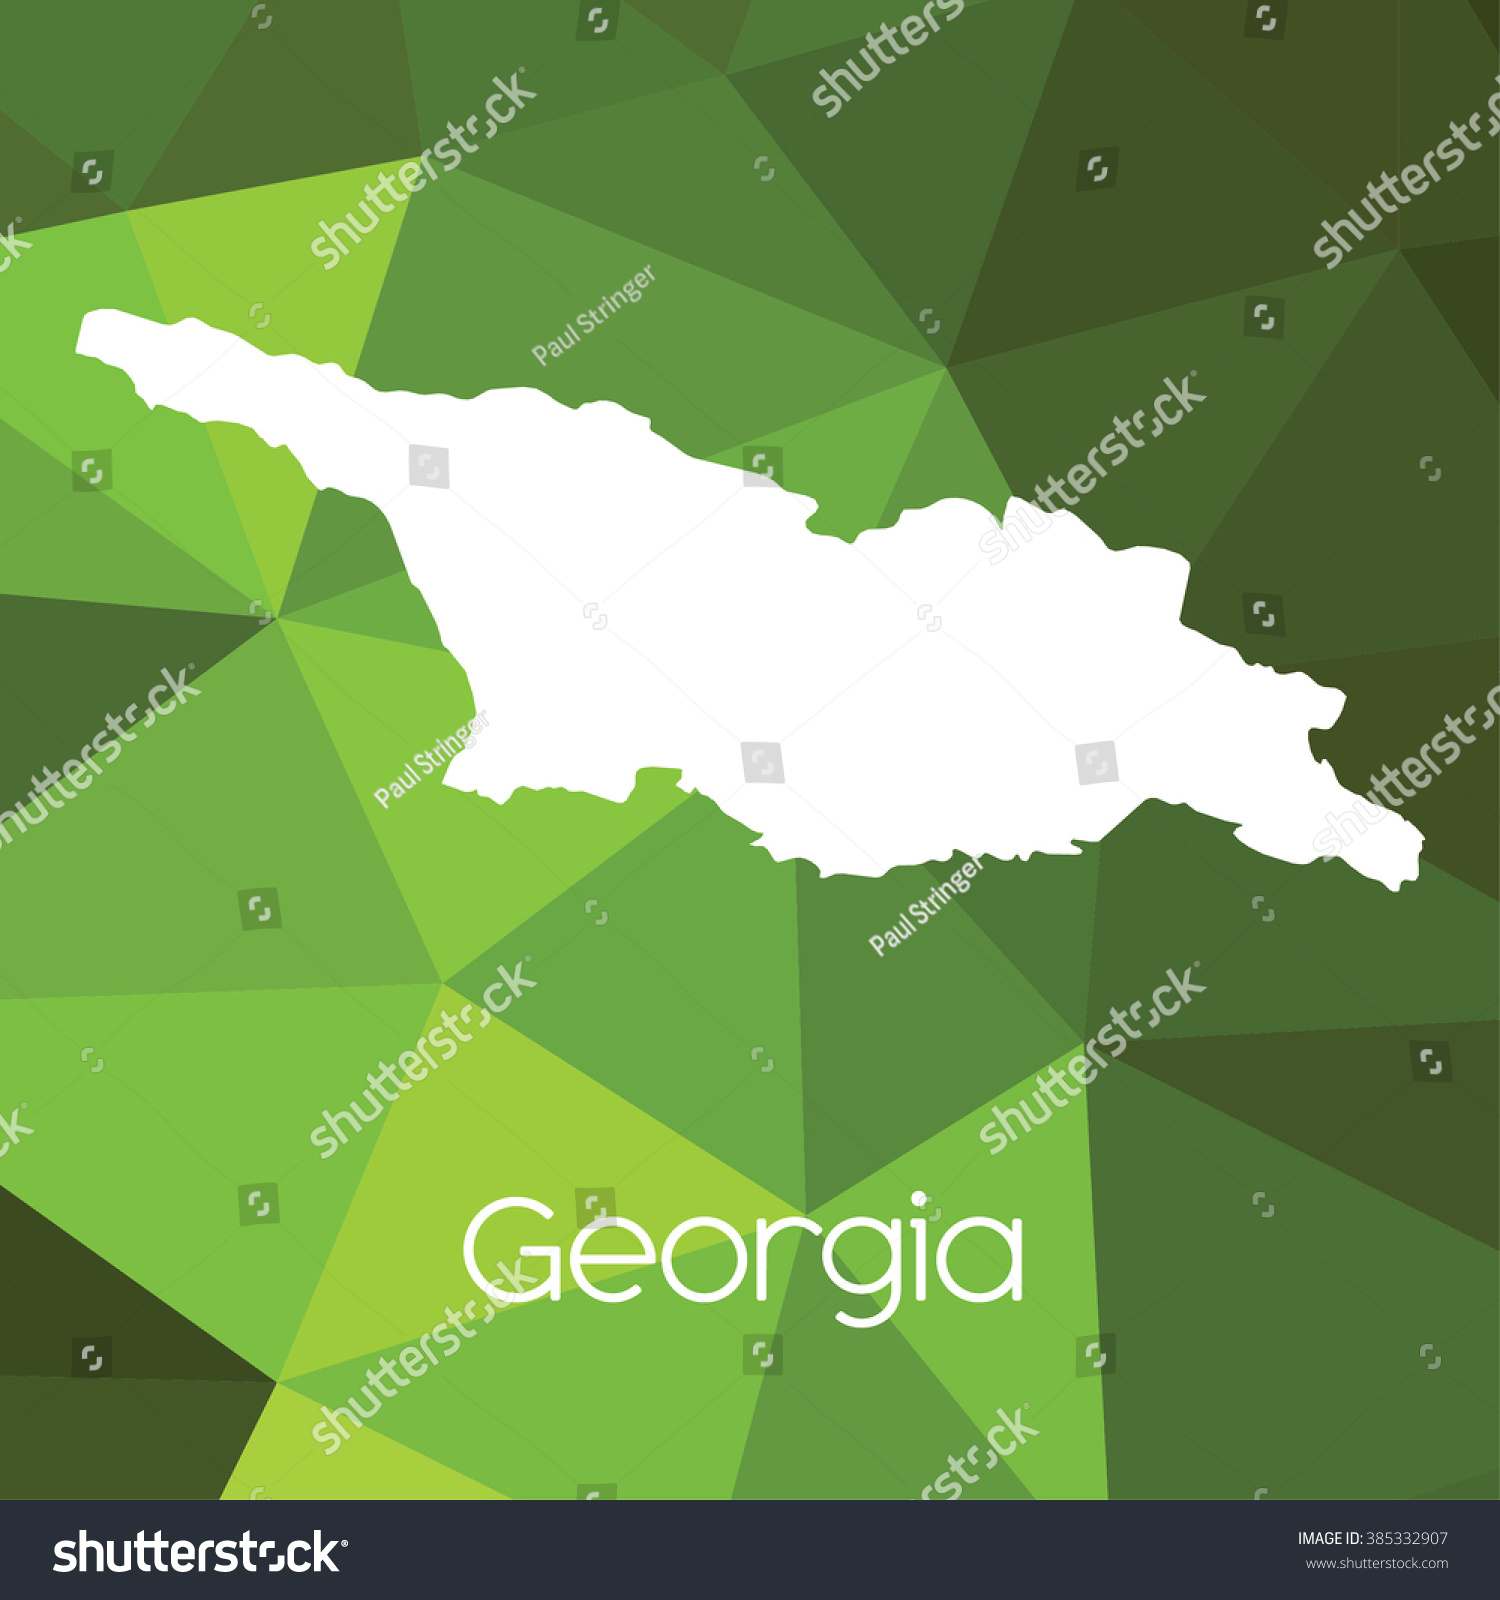 Map Of Country Of Georgia.Map Country Georgia Stock Illustration 385332907 Shutterstock